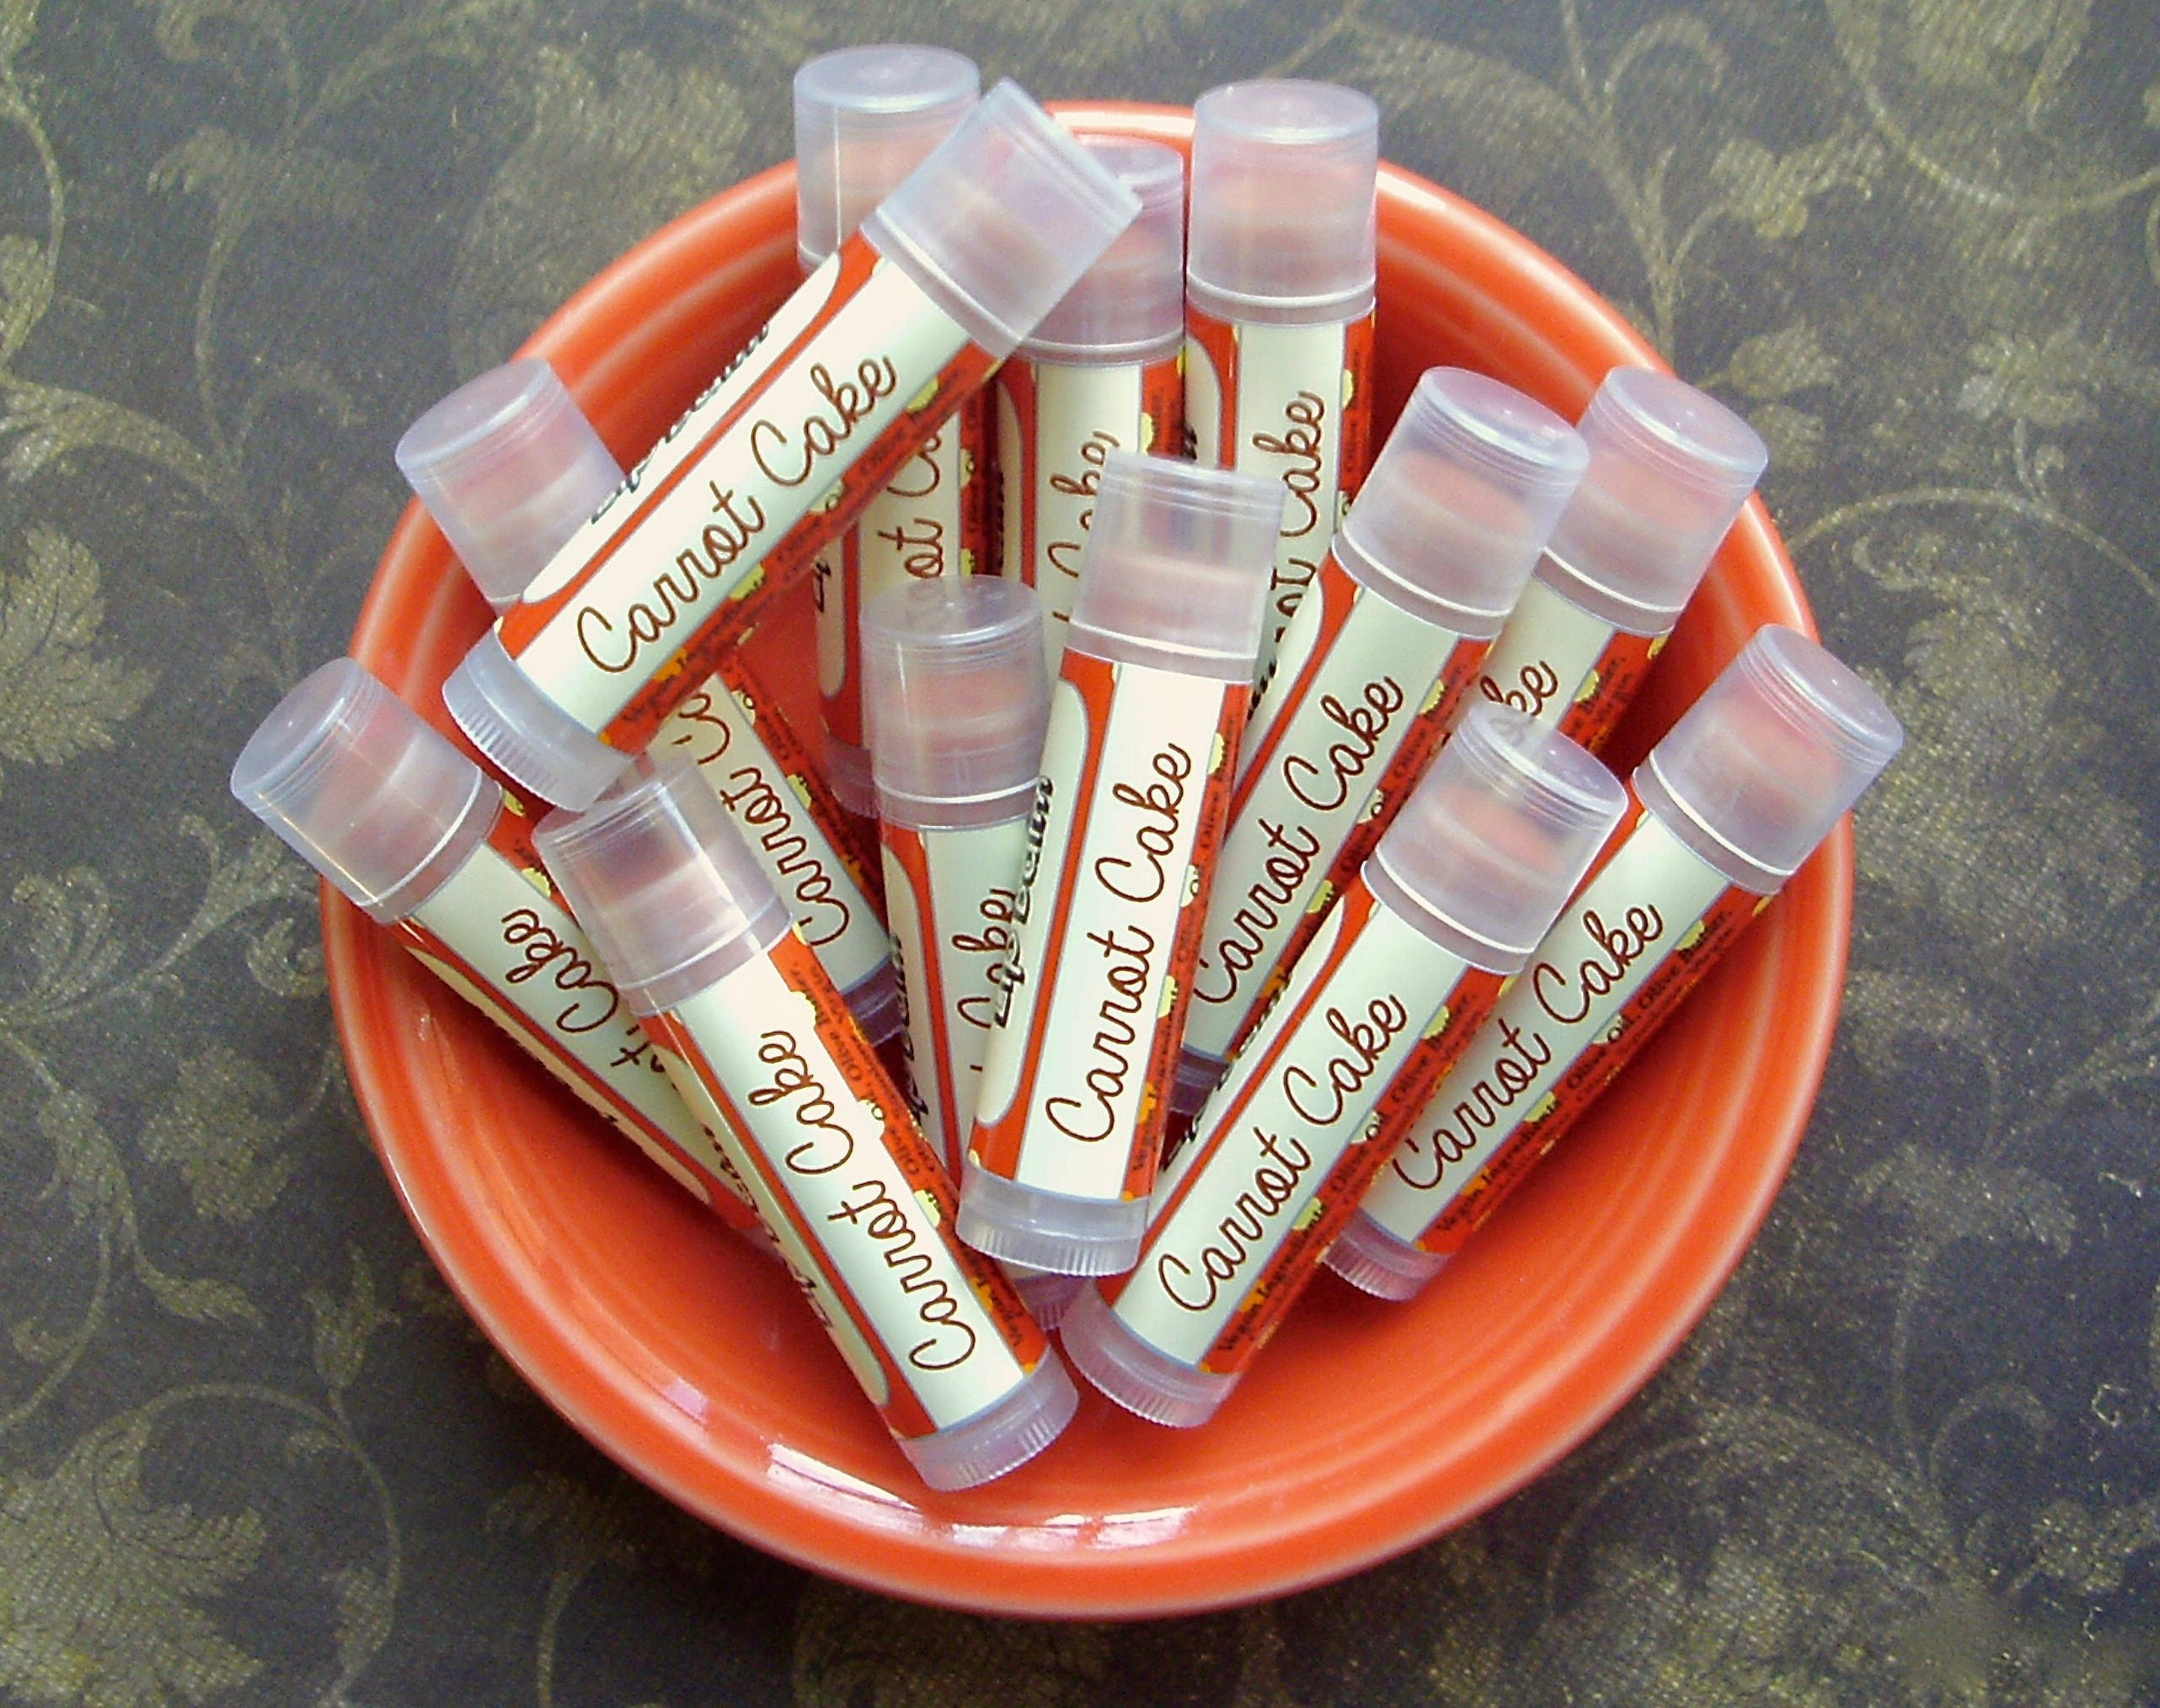 Carrot,Cake,Epic,Vegan,Lip,Balm,Bath_And_Beauty,Lip_Balm,lip_balm,lipbalm,lip_gloss,epically_epic,vegan_lip_balm,gluten_free_lip_balm,indie_lip_balm,EE_lip_balm,chapstick,carrot_cake_flavor,vanilla_frosting,spice_cake,spring_collection,vitamin e,candelilla wax,flavor,natural sweetener,v